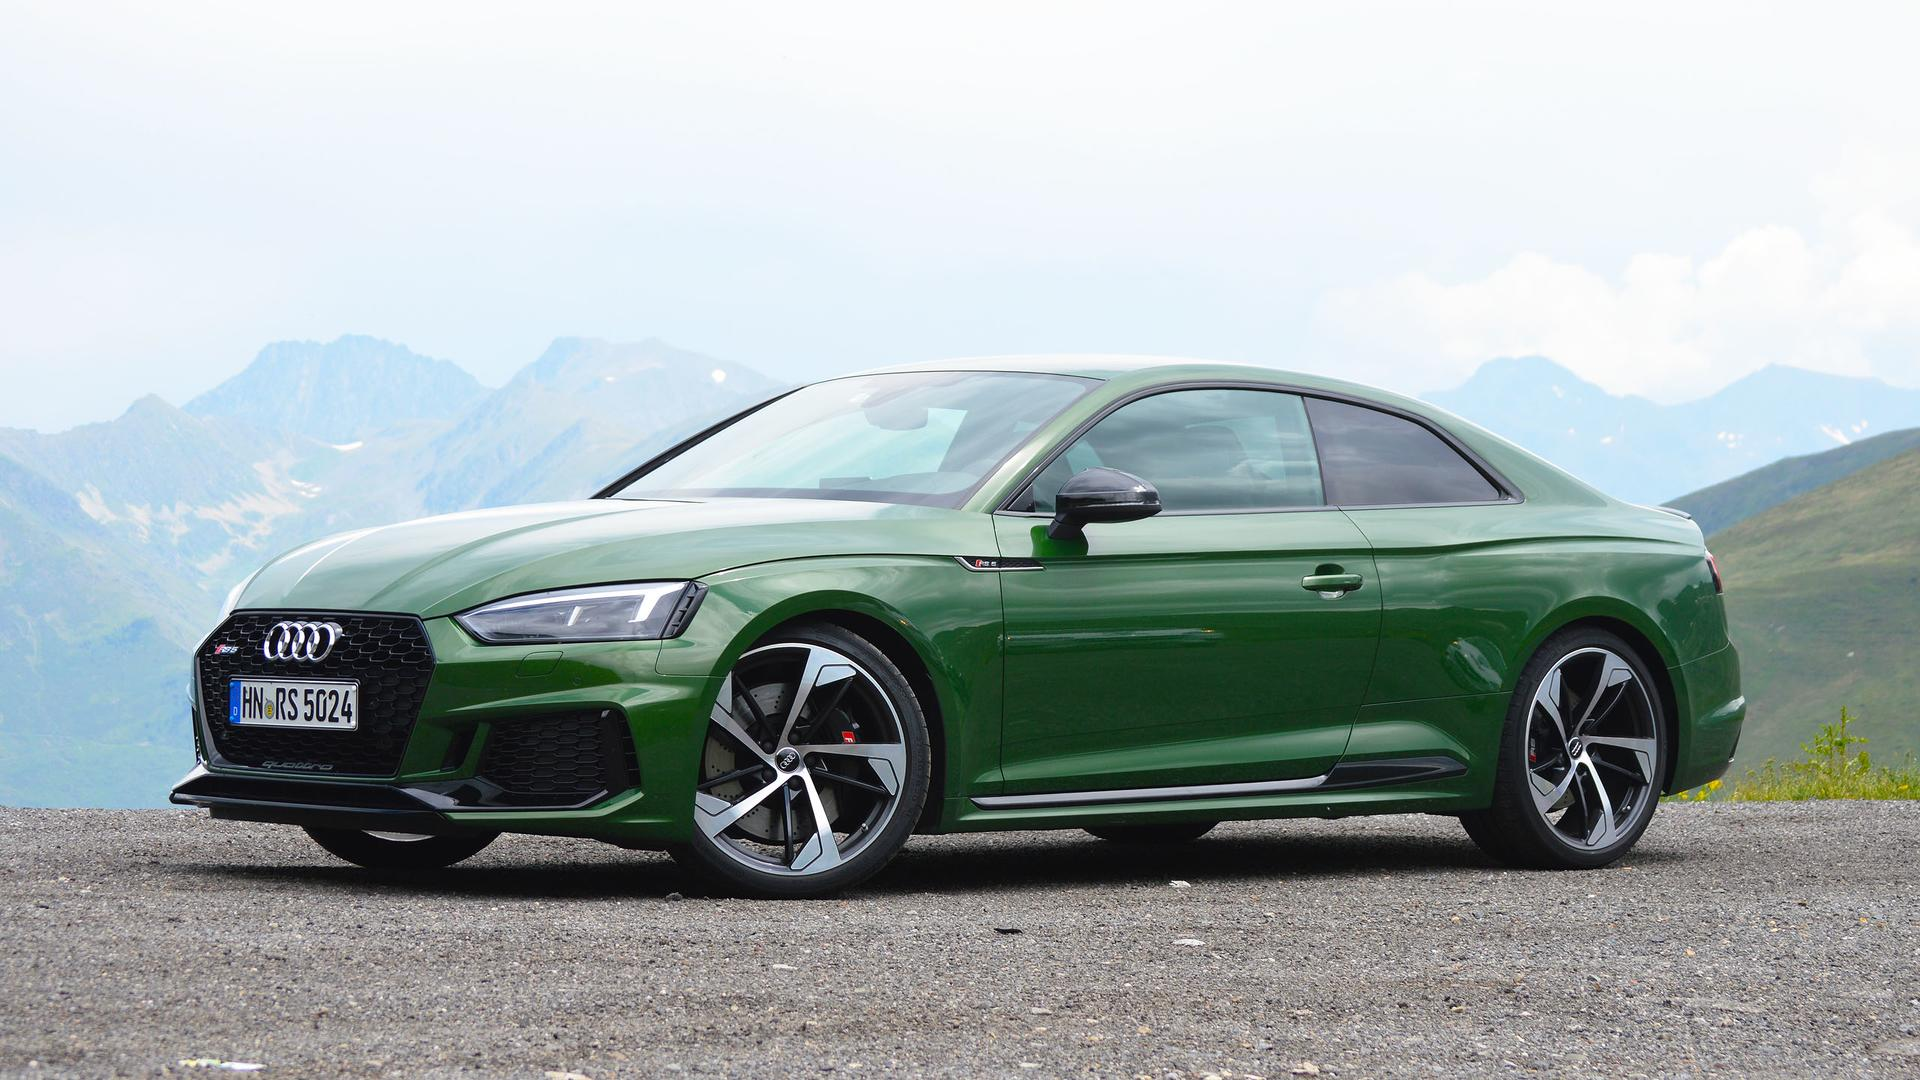 2018 Audi Rs5 Coupe First Drive Review Car And Driver ...